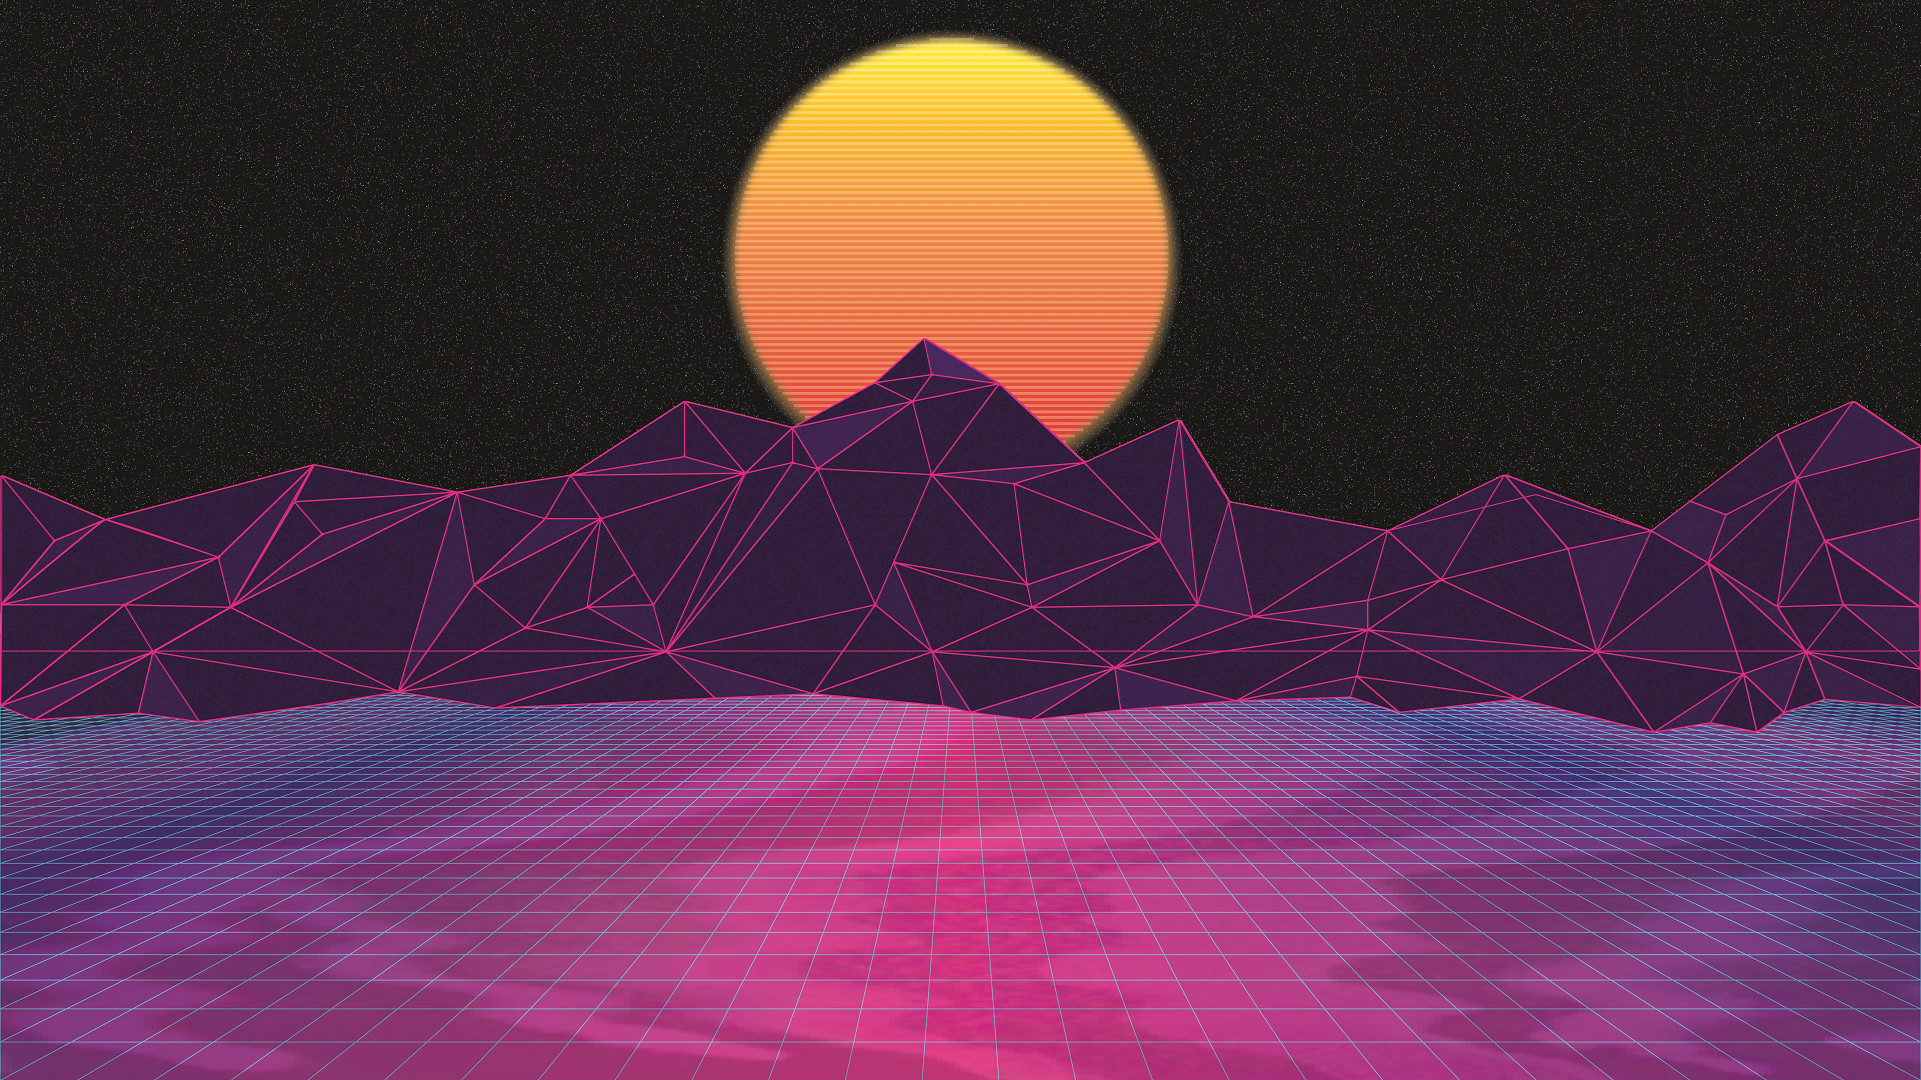 What Makes Vaporwave Aesthetic Picture design So Great?